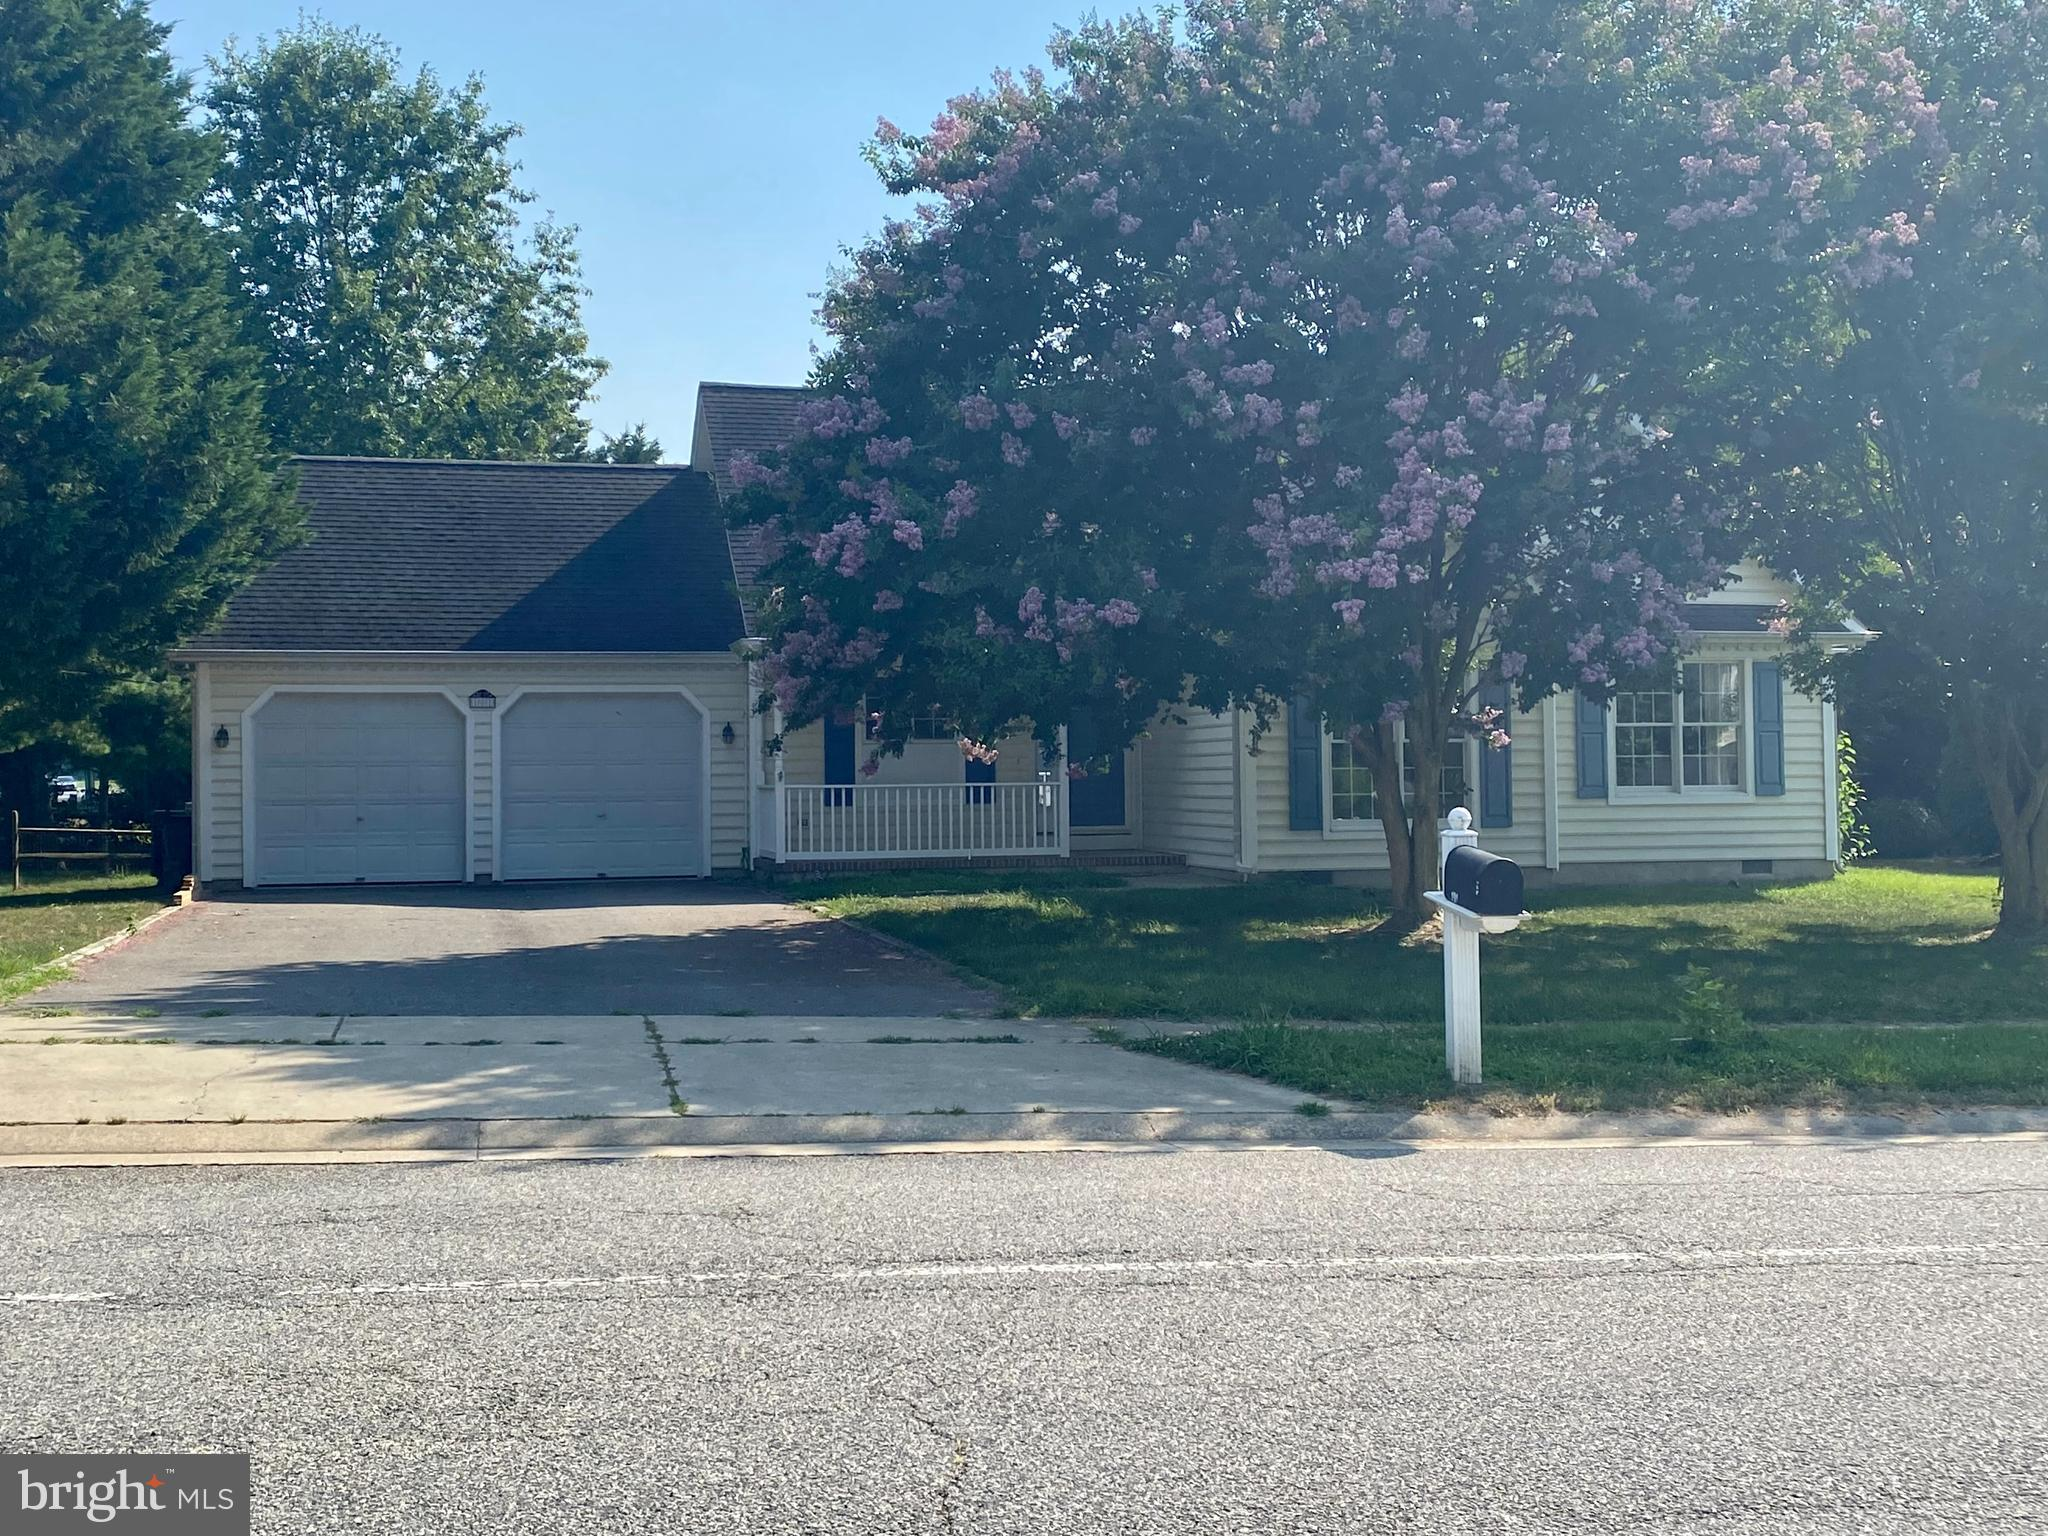 Check out this beautiful three bedroom Rancher home in the town of Centreville. Open floor plan, fen